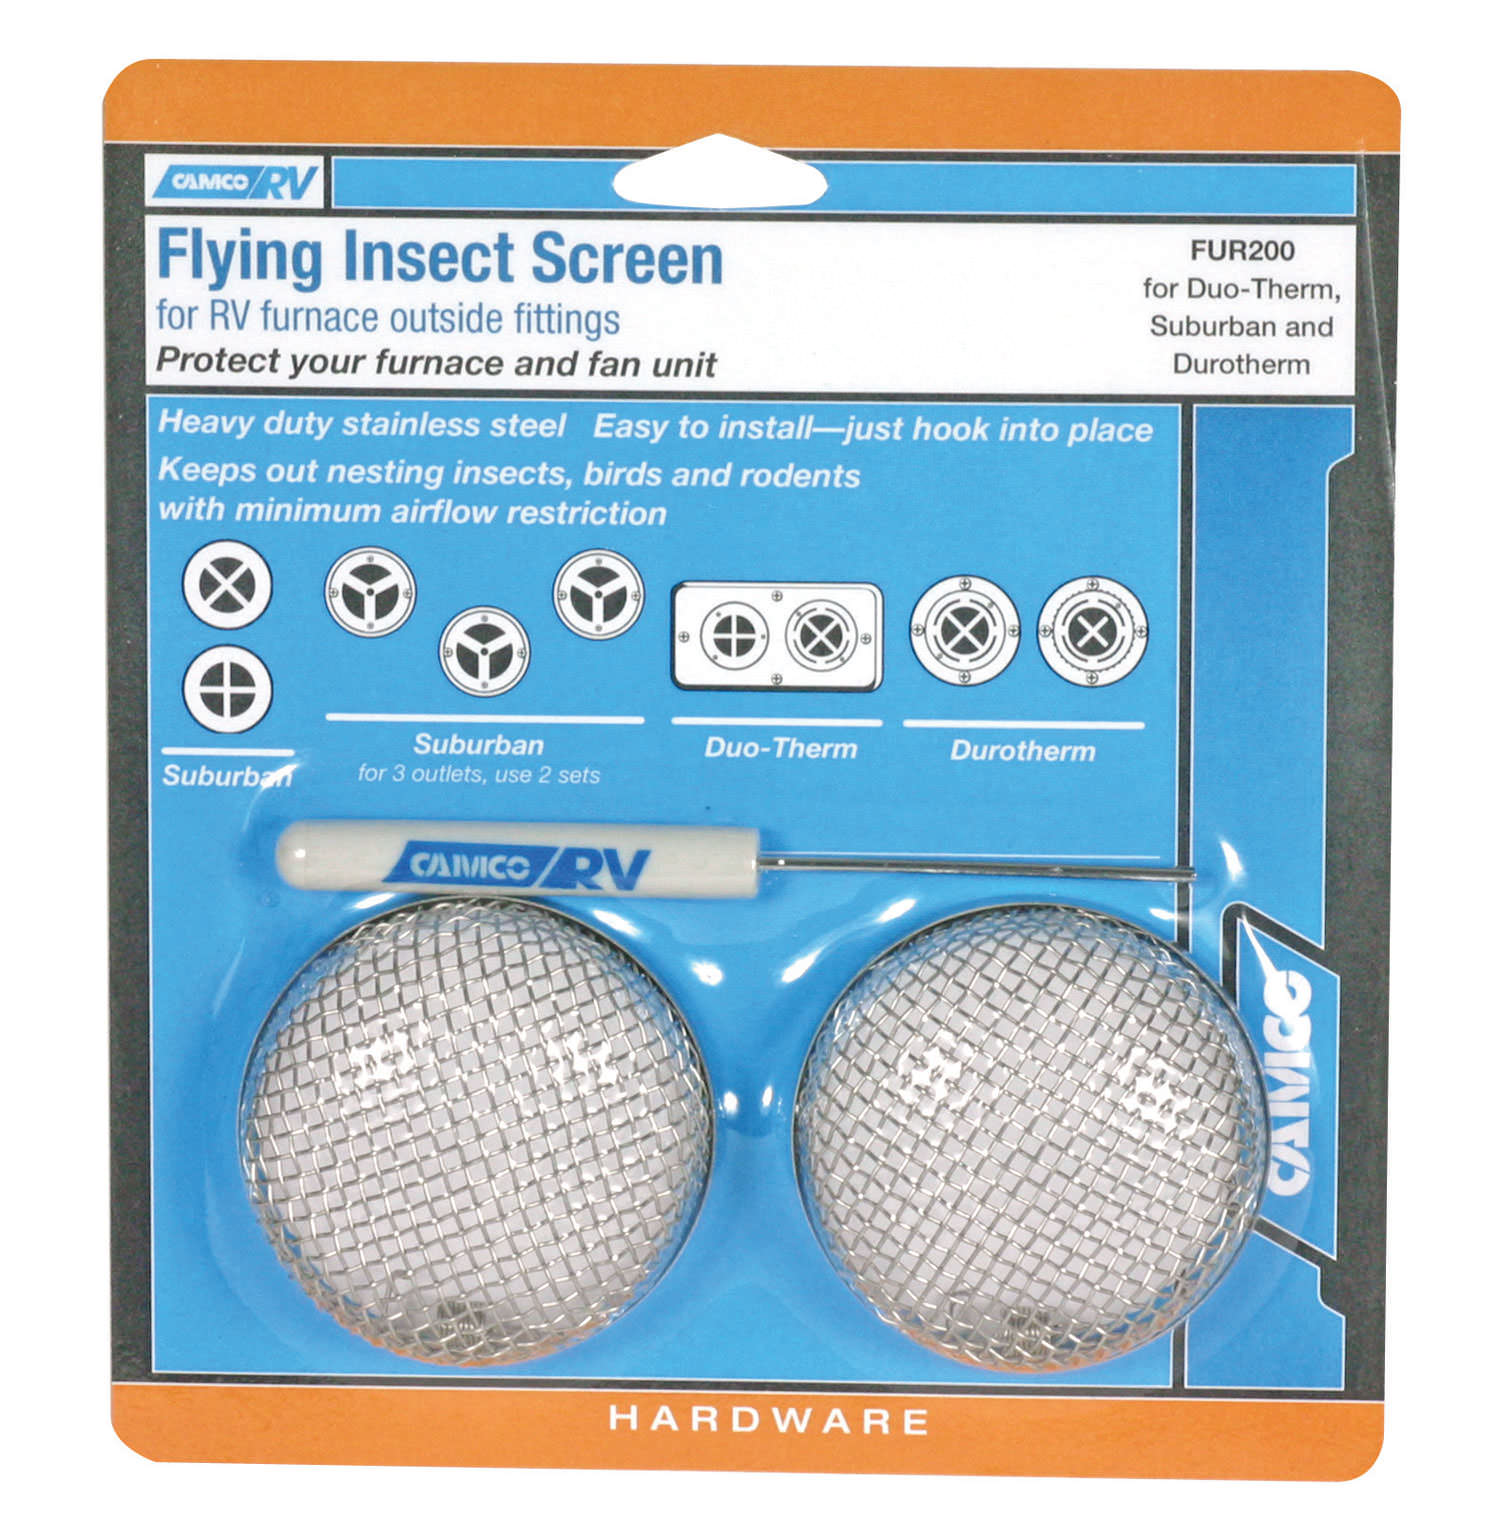 Flying Insect Screen For Duo Therm Suburban And Durotherm Furnaces Rv Furnace Troubleshooting Camco 42141 Control Camping World